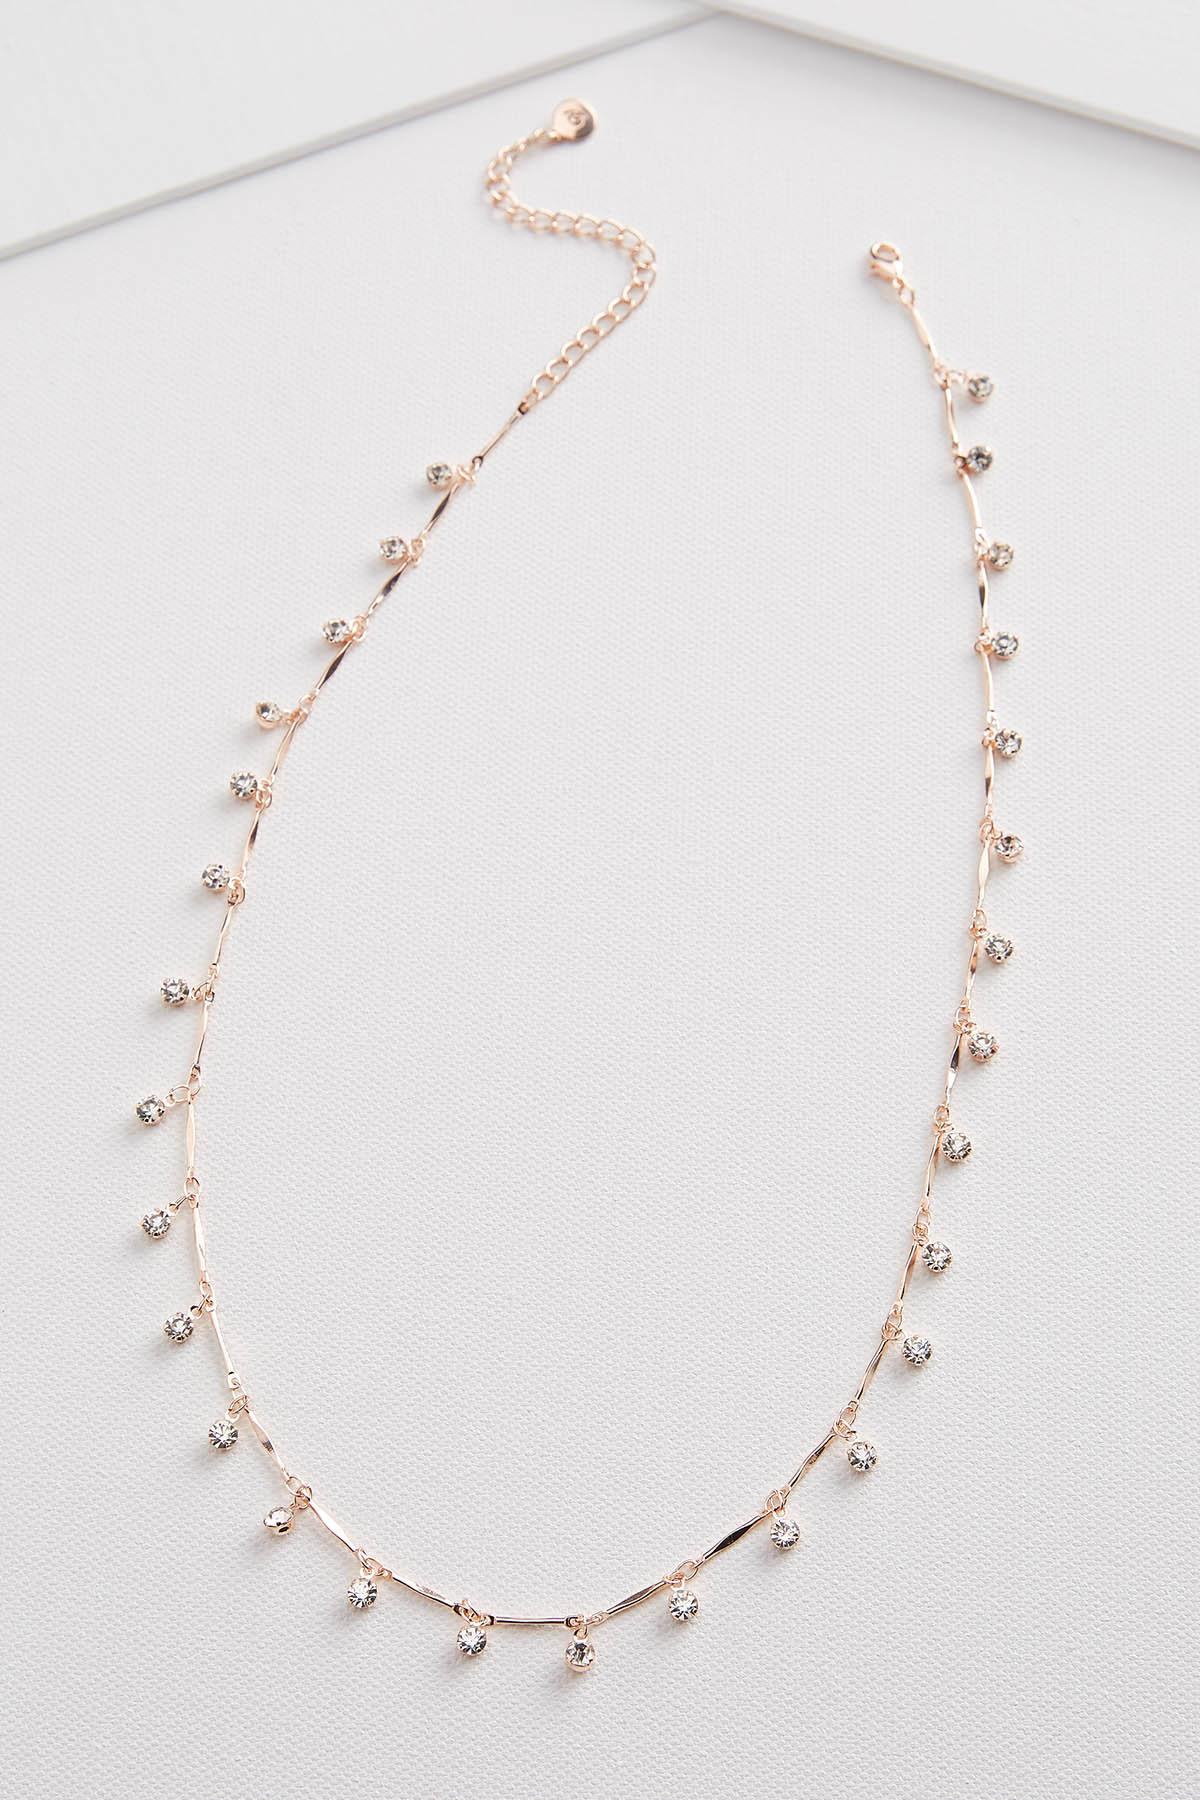 Short Shaky Chain Necklace